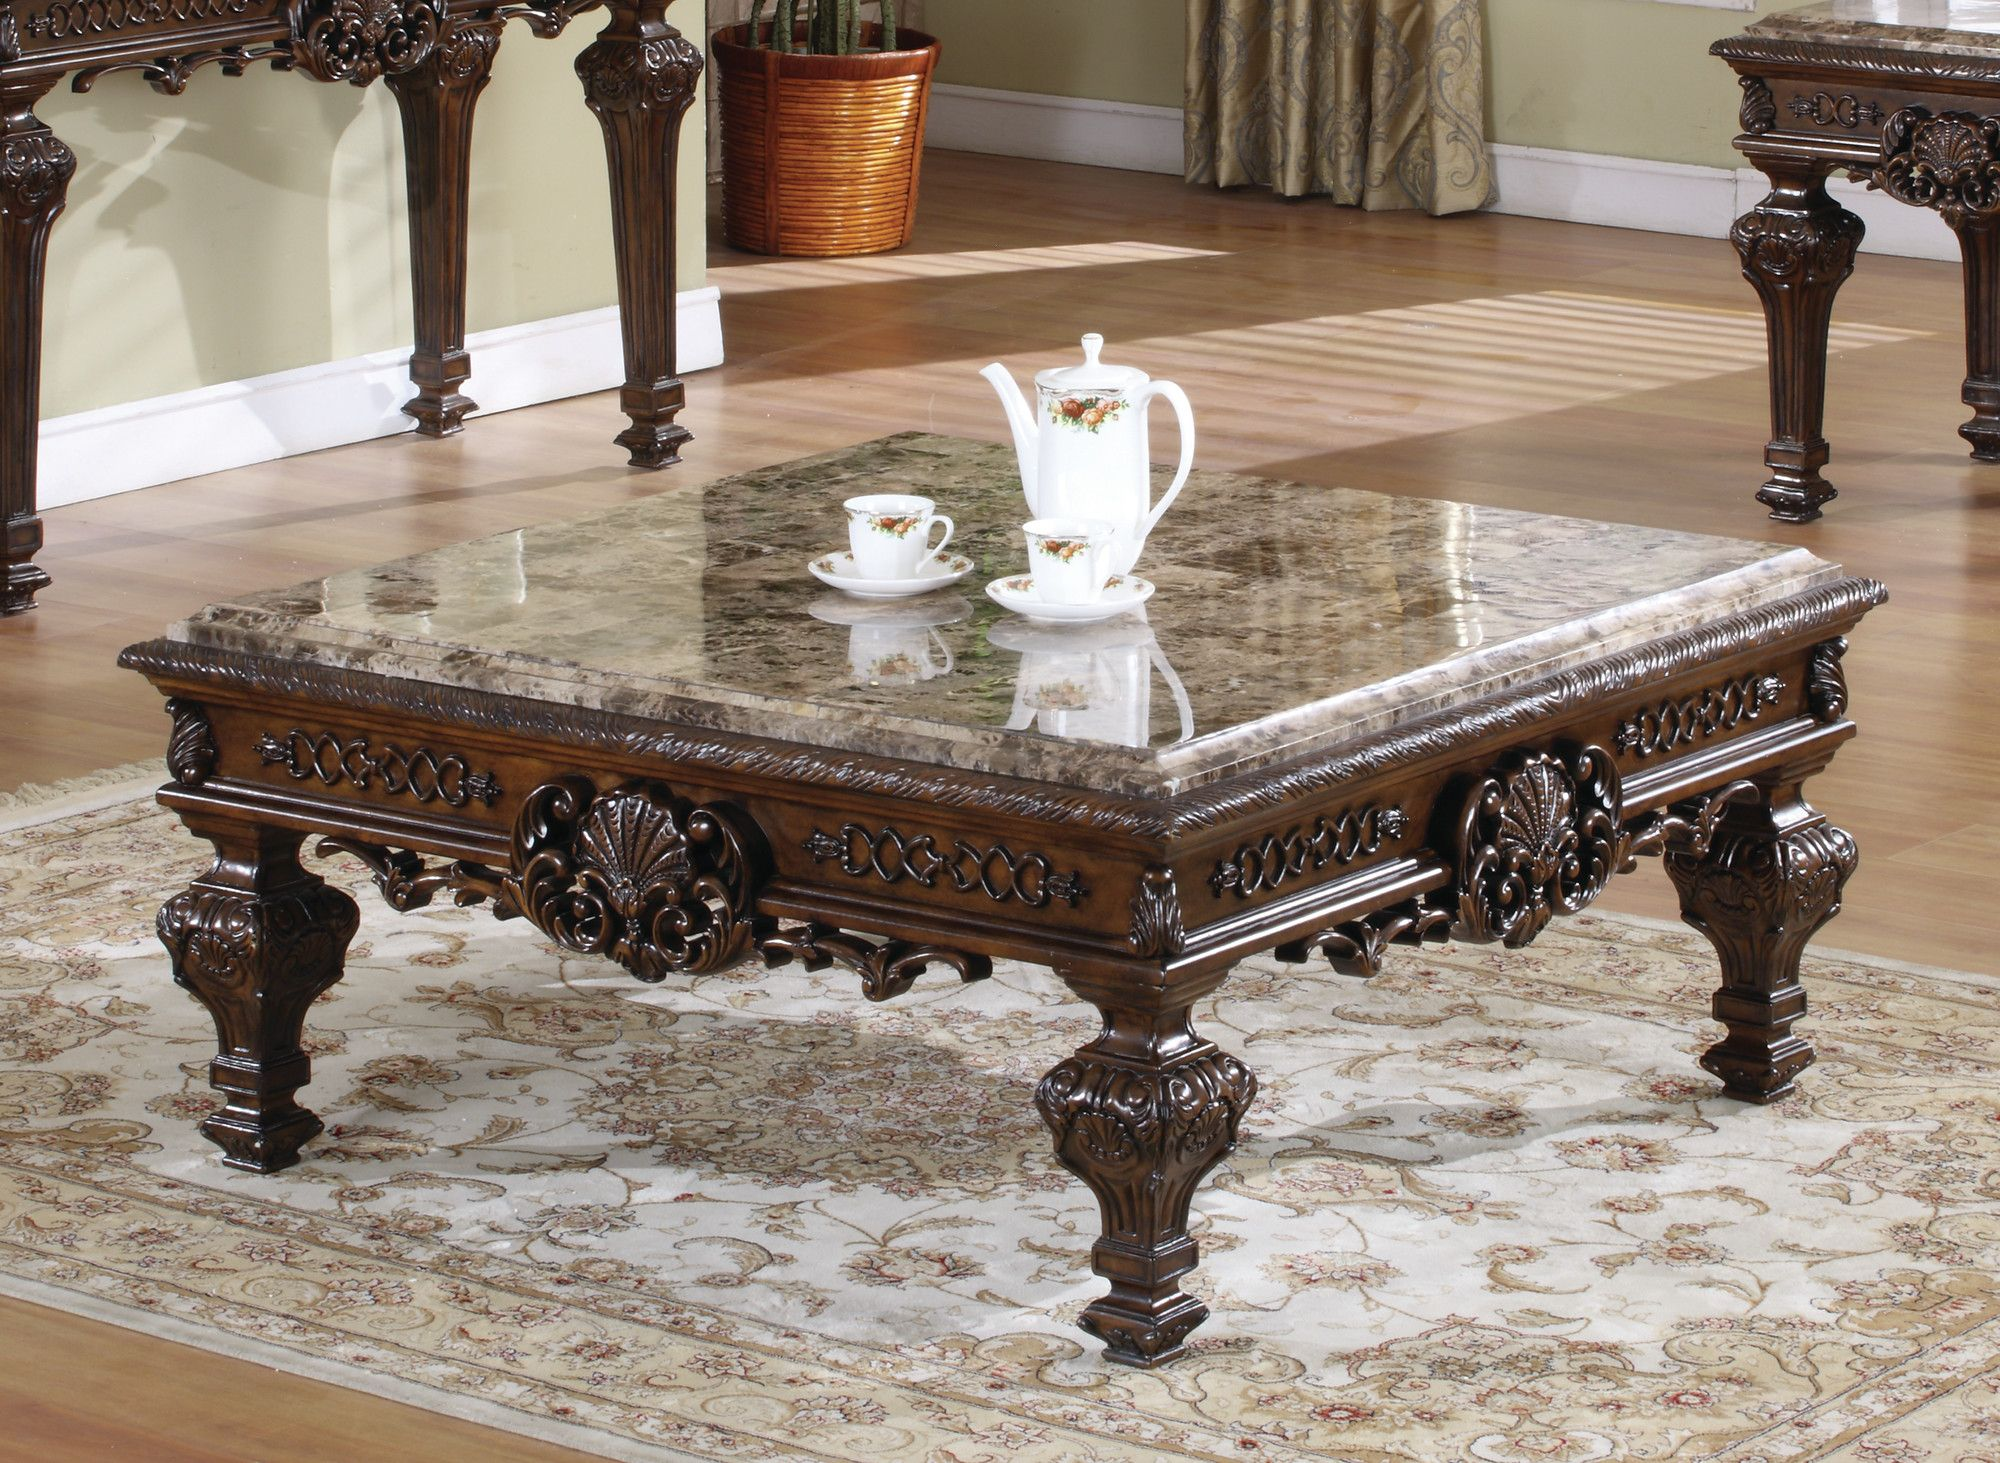 Square Coffee Table Traditional Coffee Table Coffee Table Wood Coffee Table [ 1463 x 2000 Pixel ]